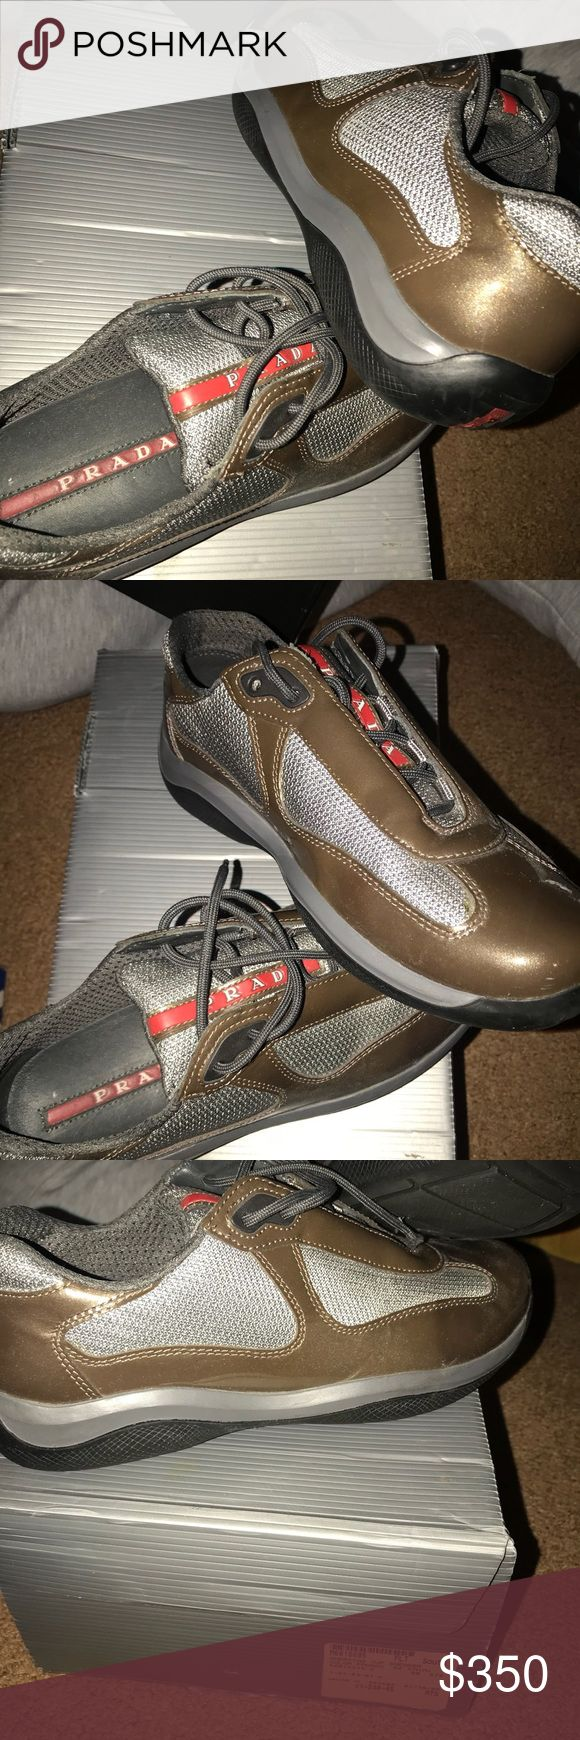 Prada sneakers Gold and grey AUTHENTIC Prada's. Price is negotiable but don't low ball. Sneakers are very comfortable. Very lightly worn. Bag and box included. Prada Shoes Sneakers